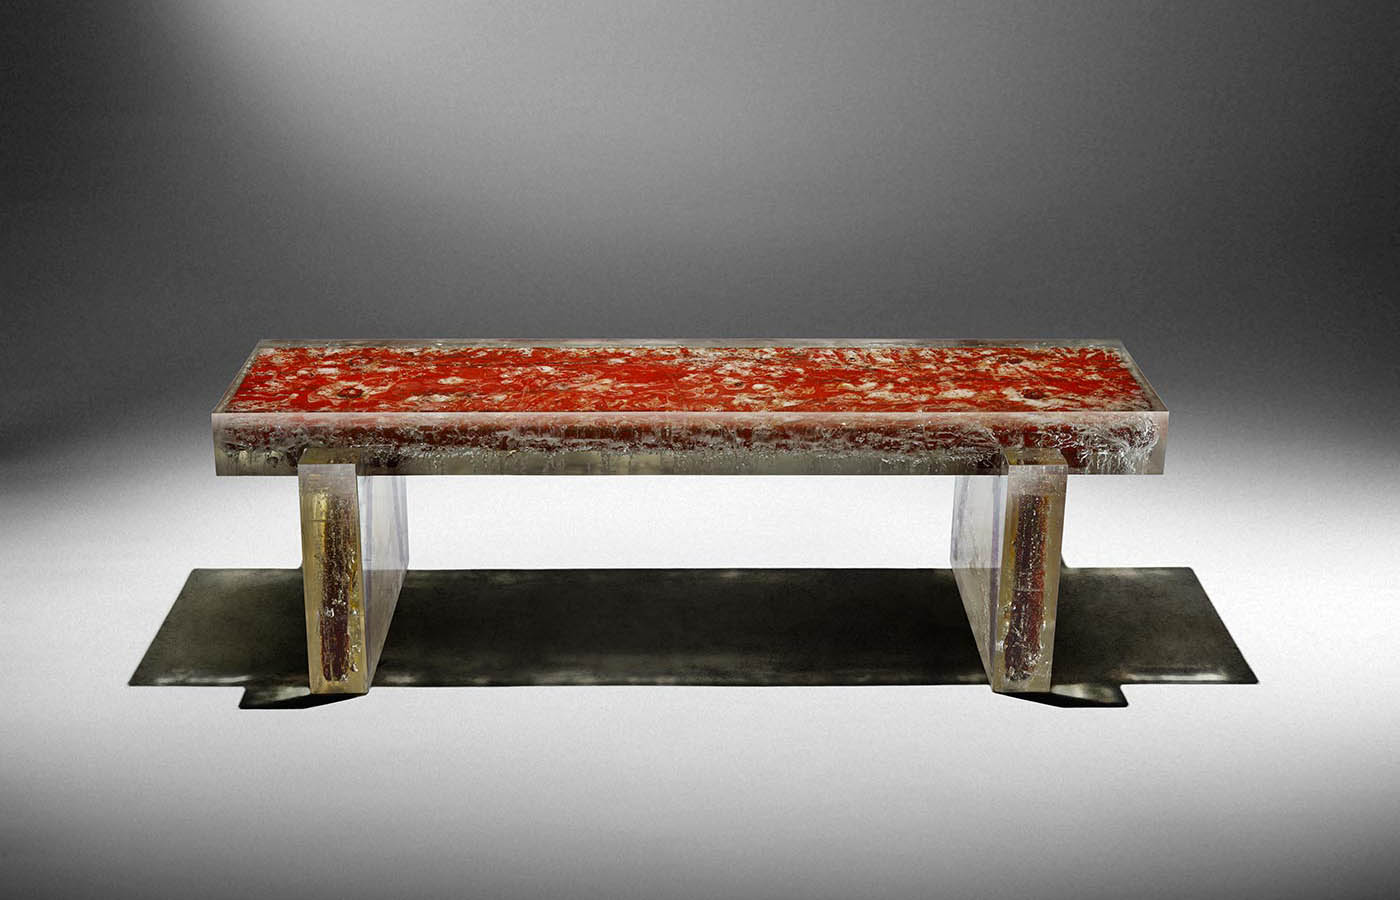 Studio-Nucleo_Souvenir-of-the-last-century_bench-04_high-A_big